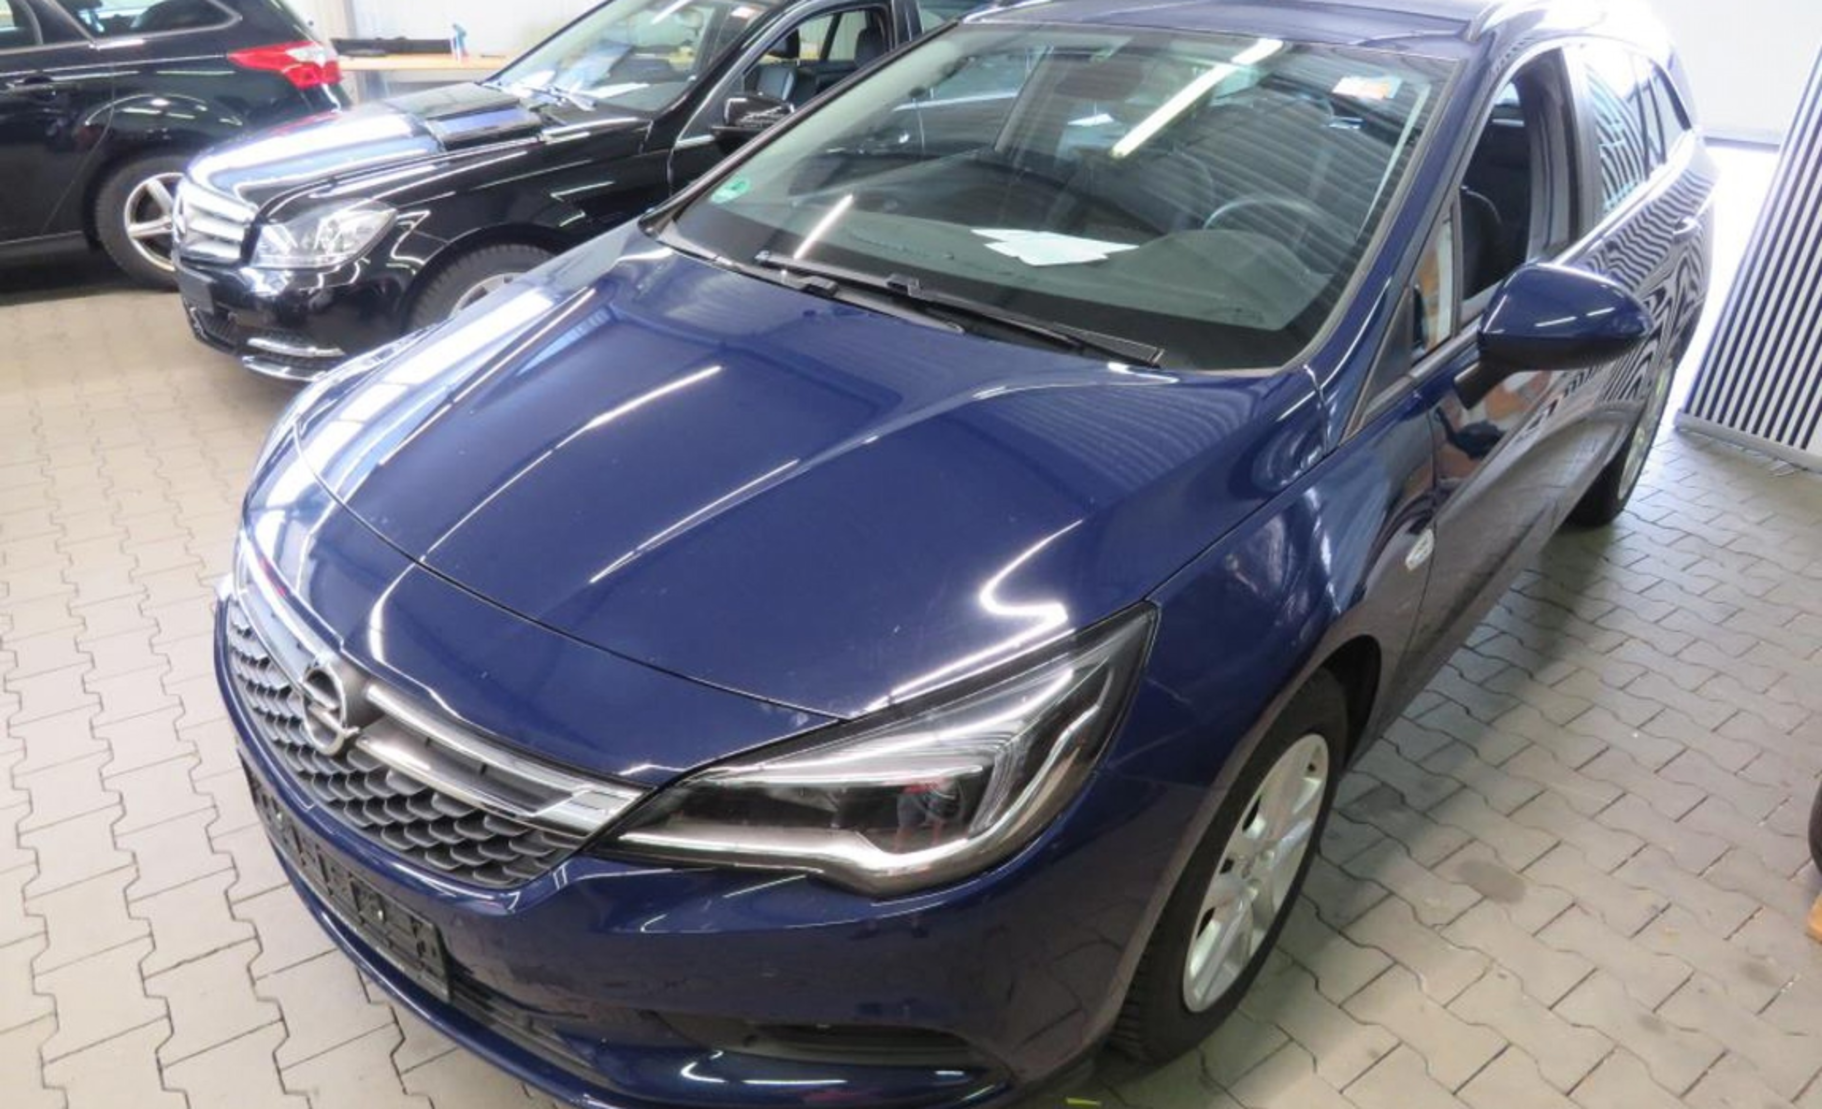 Opel Astra 1.6 CDTI Start/Stop Sports Tourer Edition (621207) detail1